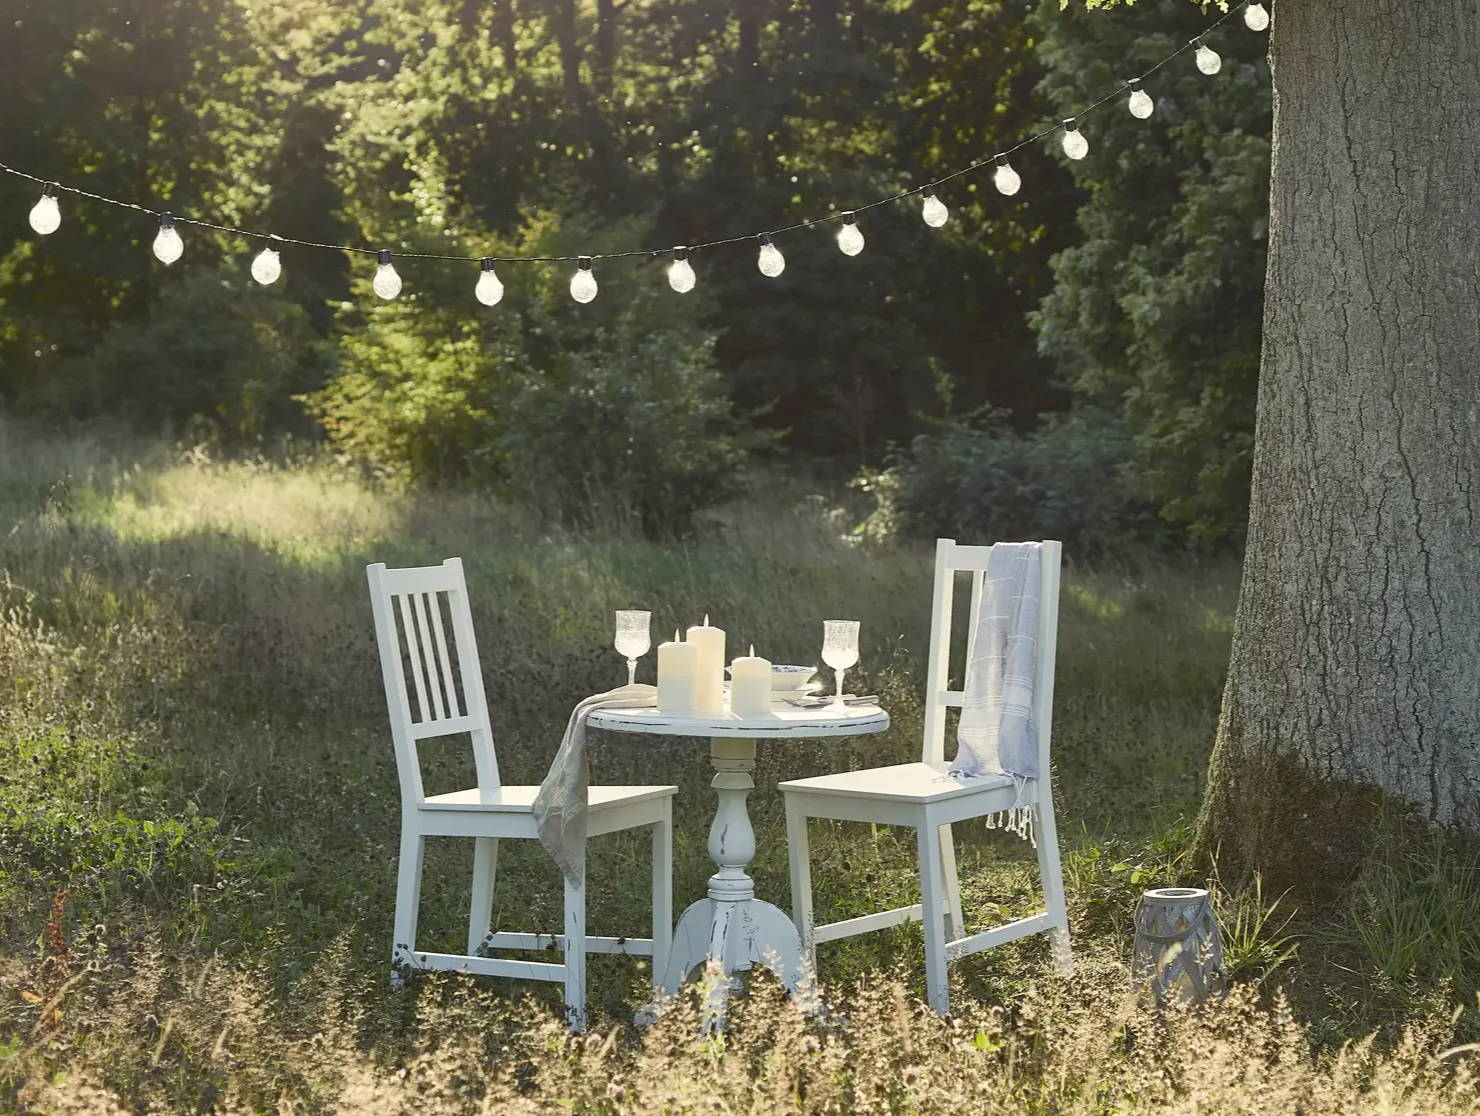 Meadow dining with festoons hung between trees and outdoor candles displayed on table